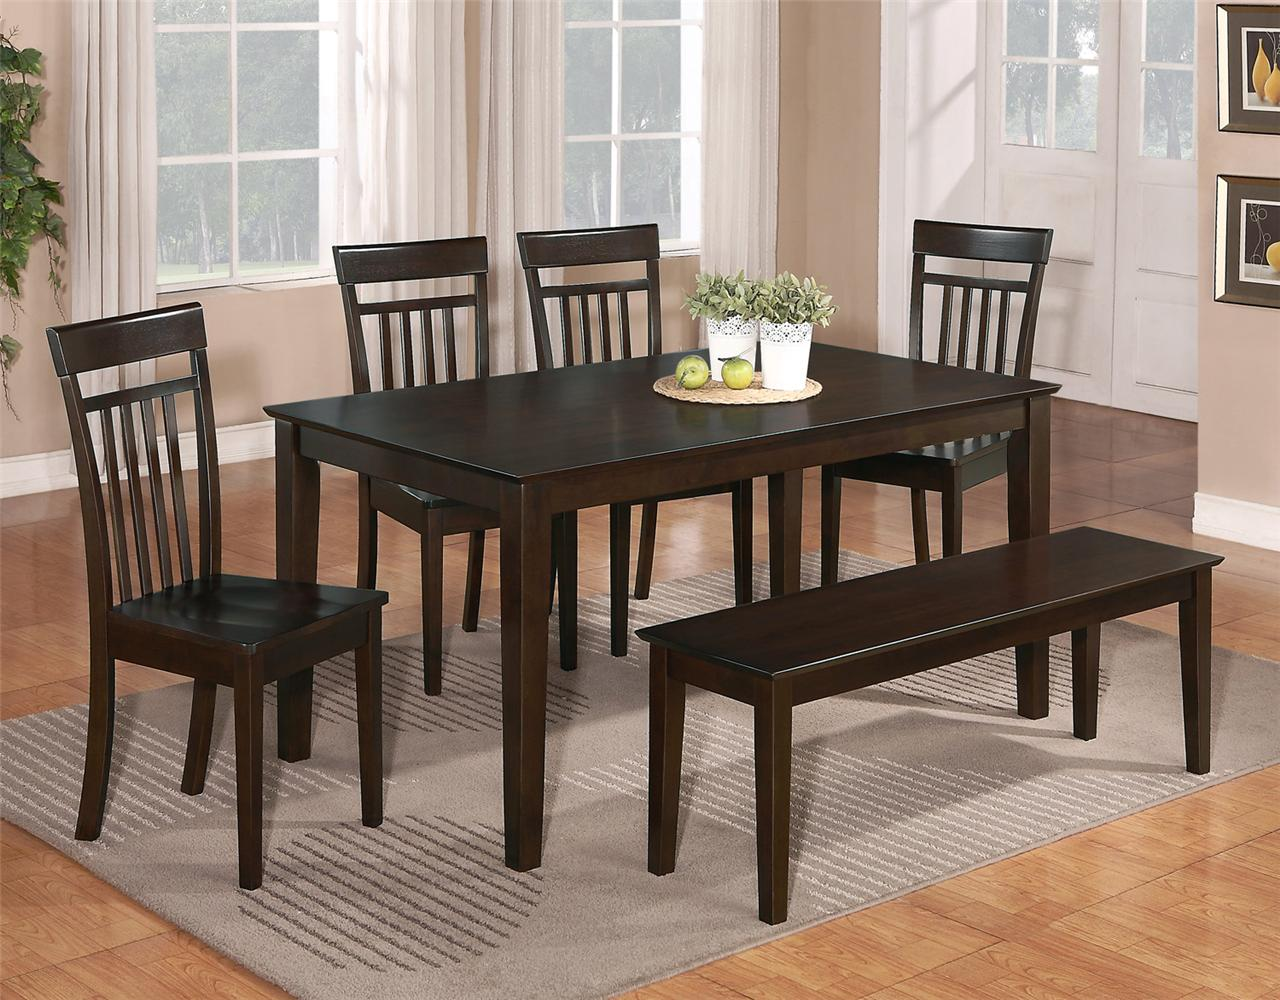 6 pc dinette kitchen dining room set table w 4 wood chair for Six chair dining table set